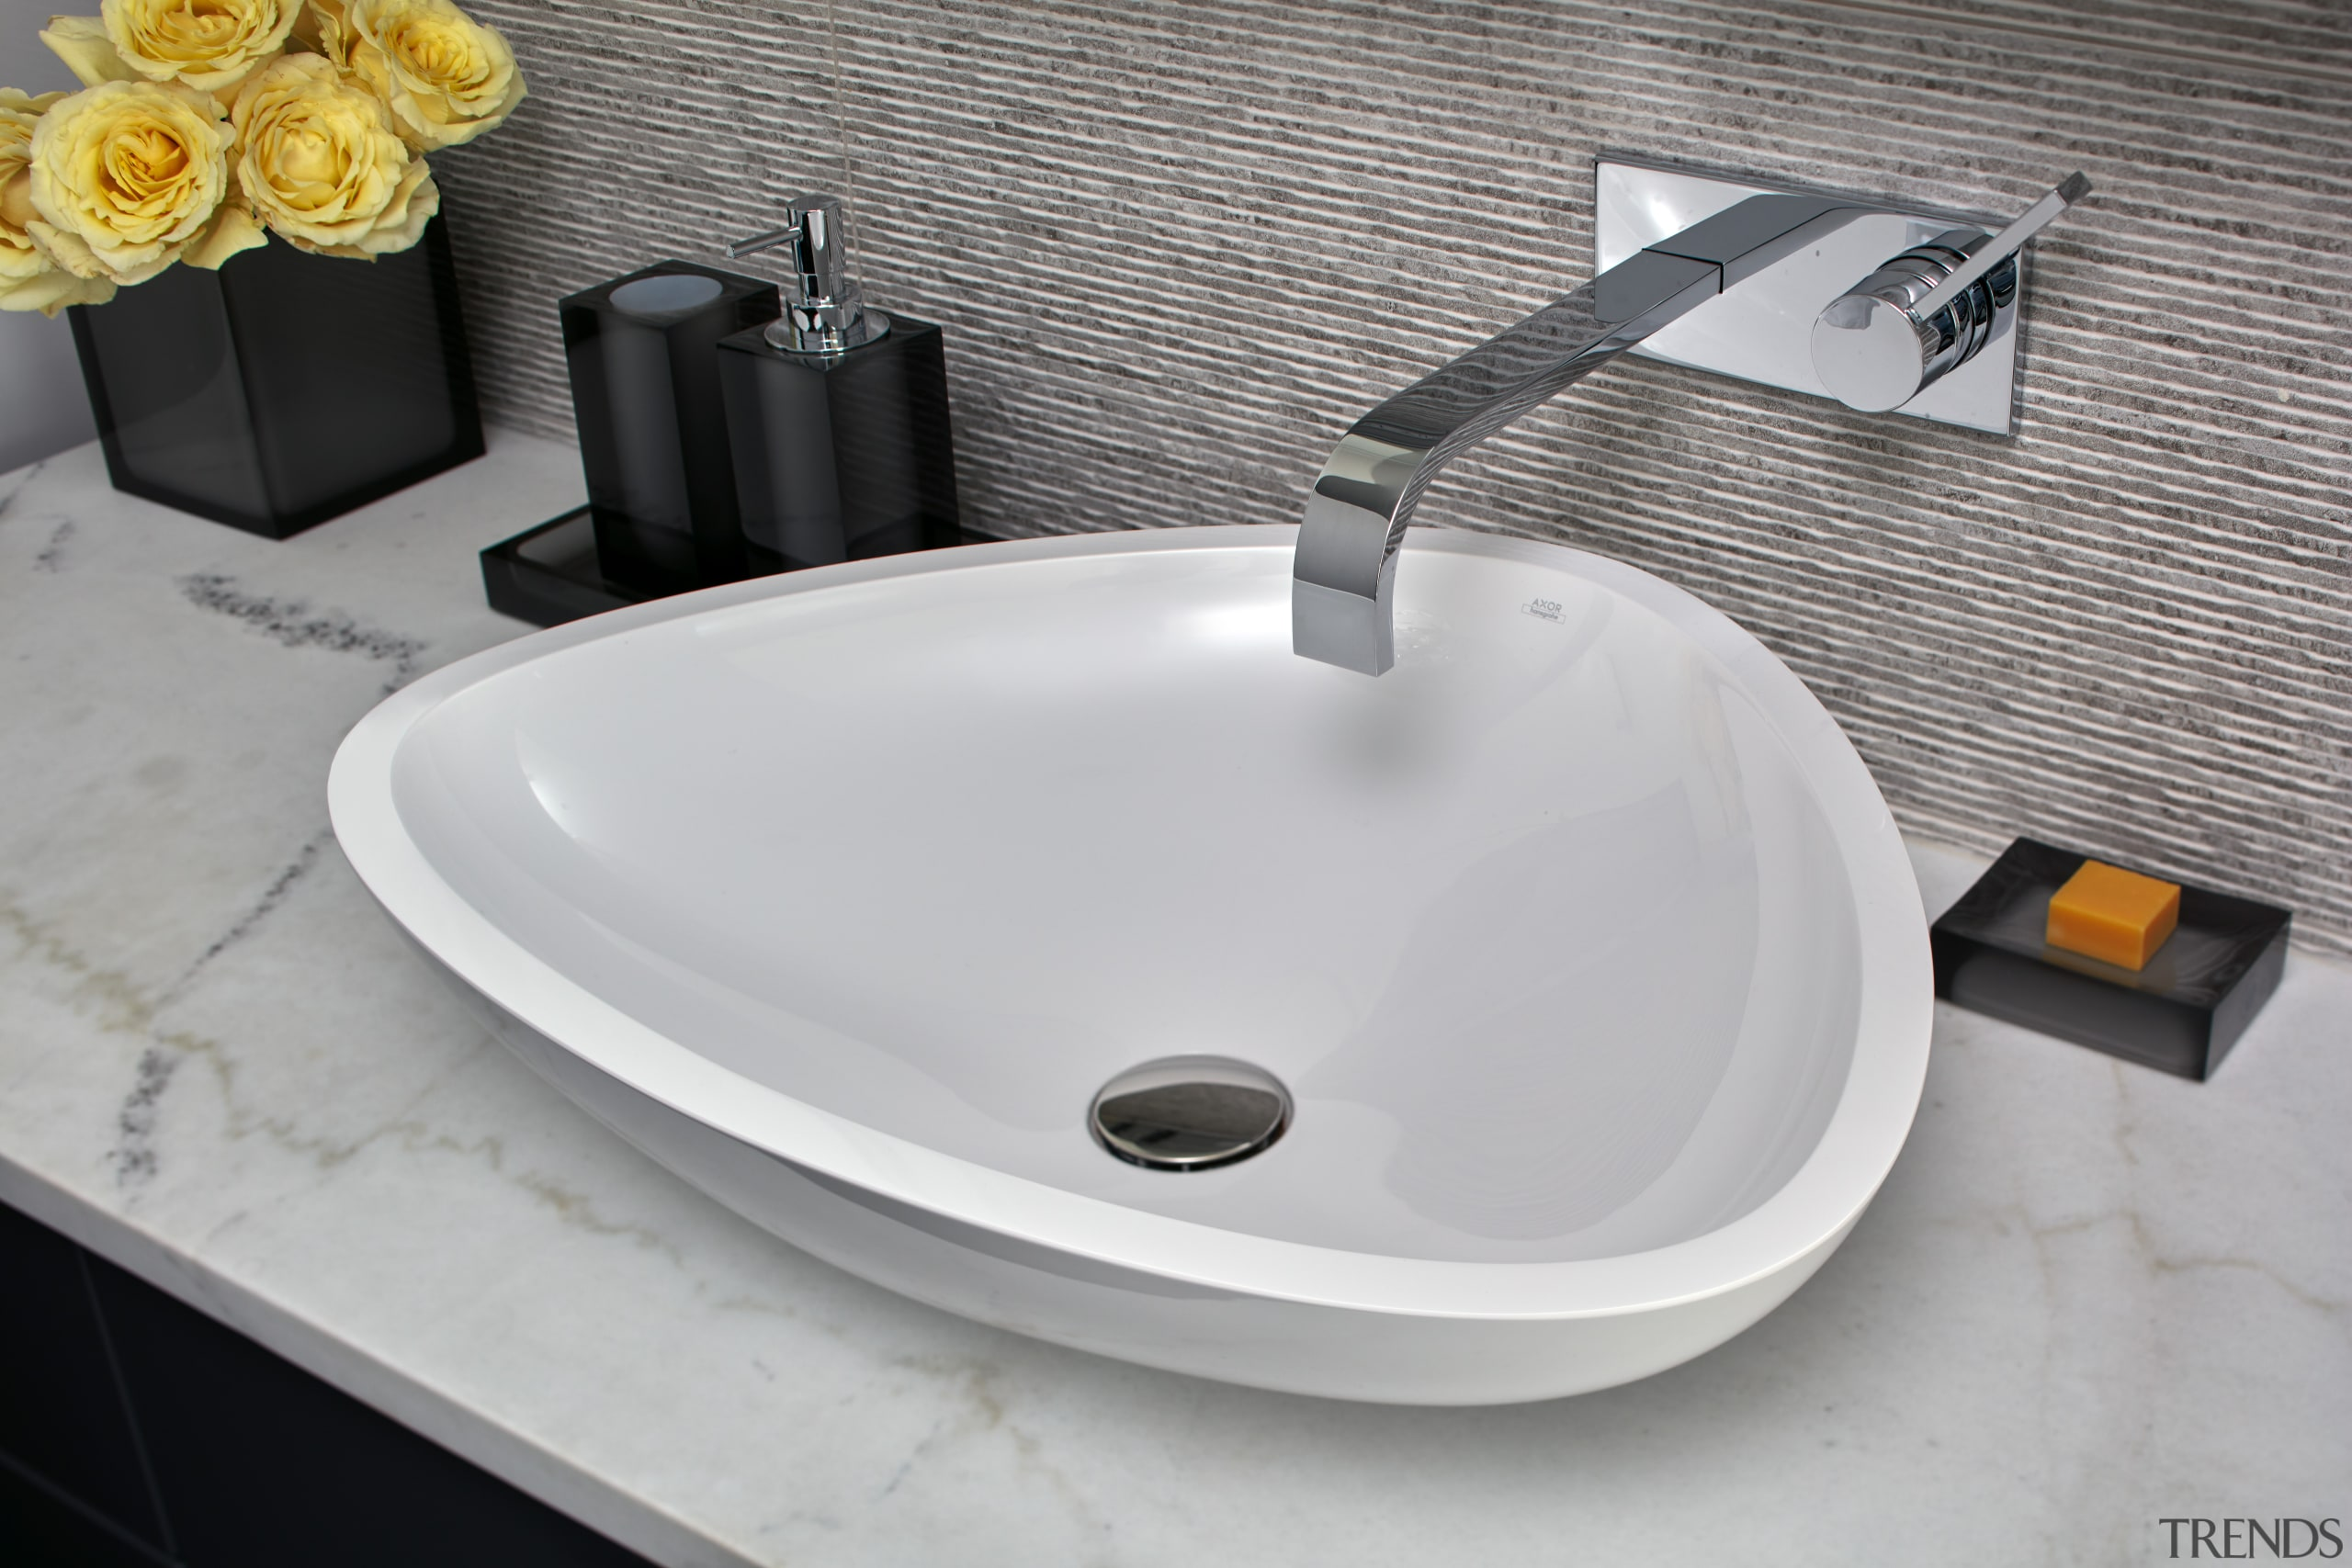 Soft-curve triangular basins are complemented by veined marble bathroom sink, ceramic, plumbing fixture, product, sink, tap, gray